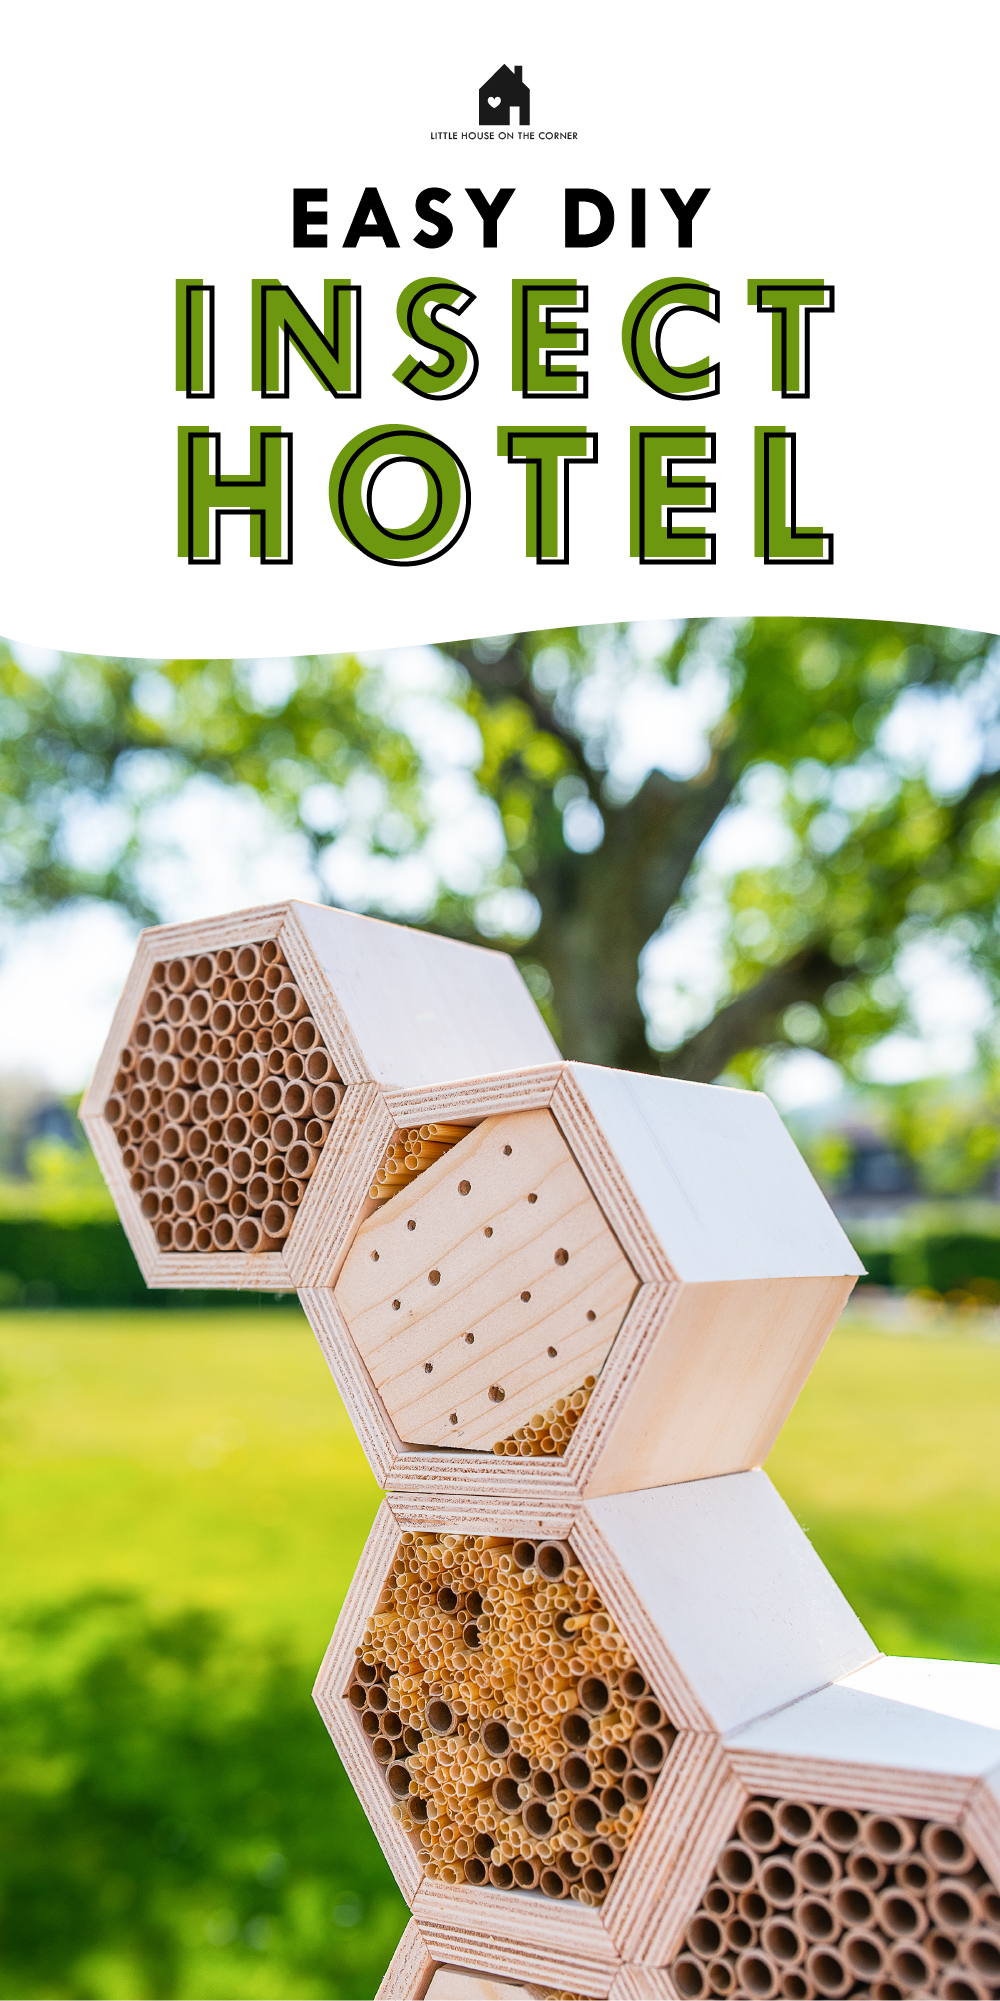 Easy DIY Insect Hotel